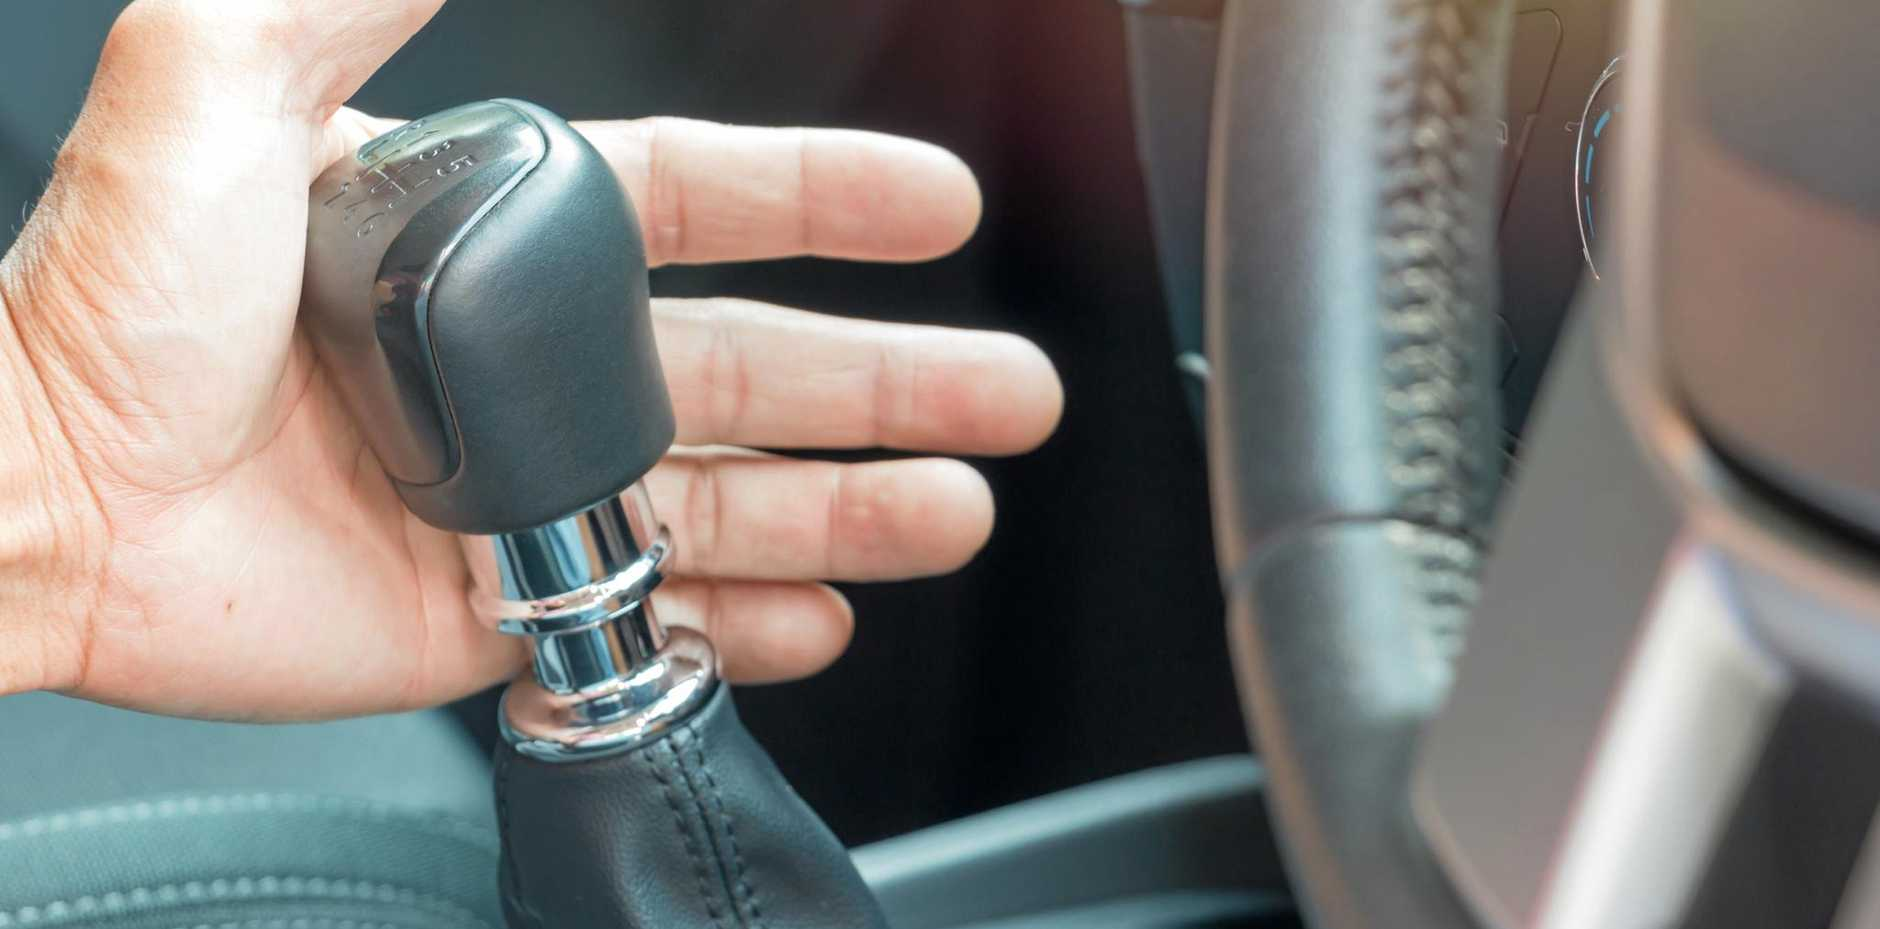 It seems shifting a manual transmission is almost redundant.